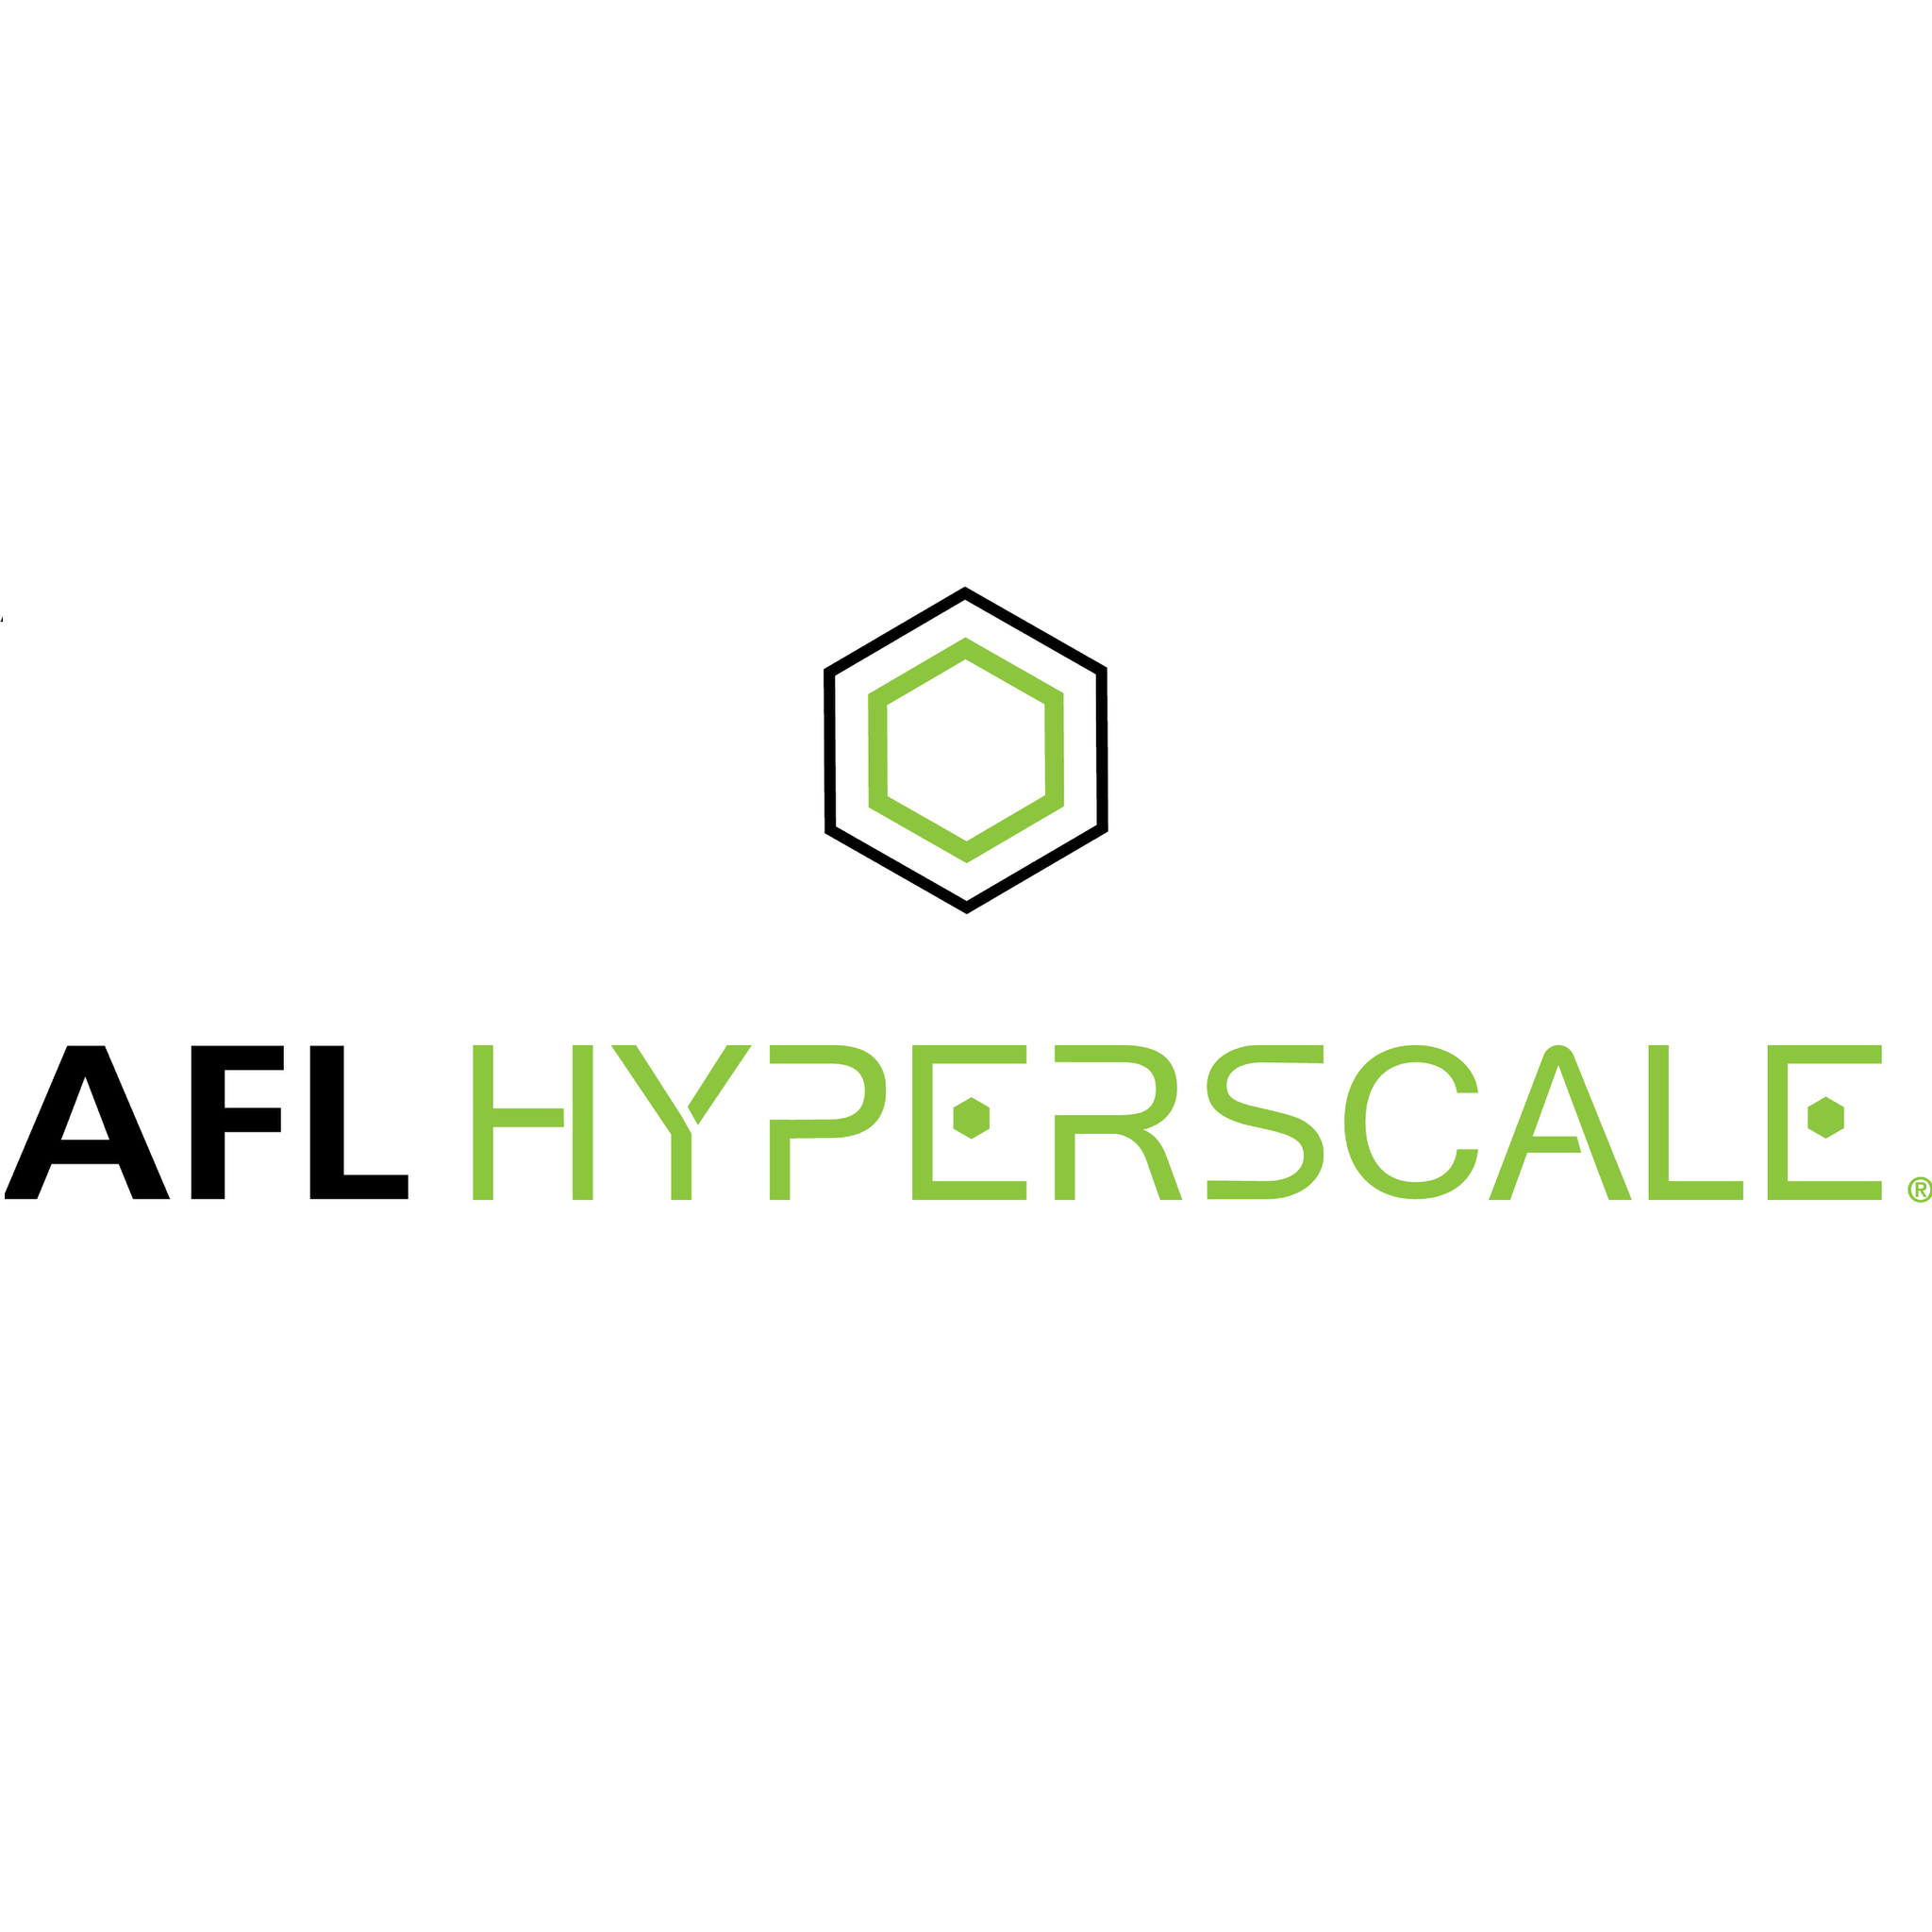 AFL Hyperscale